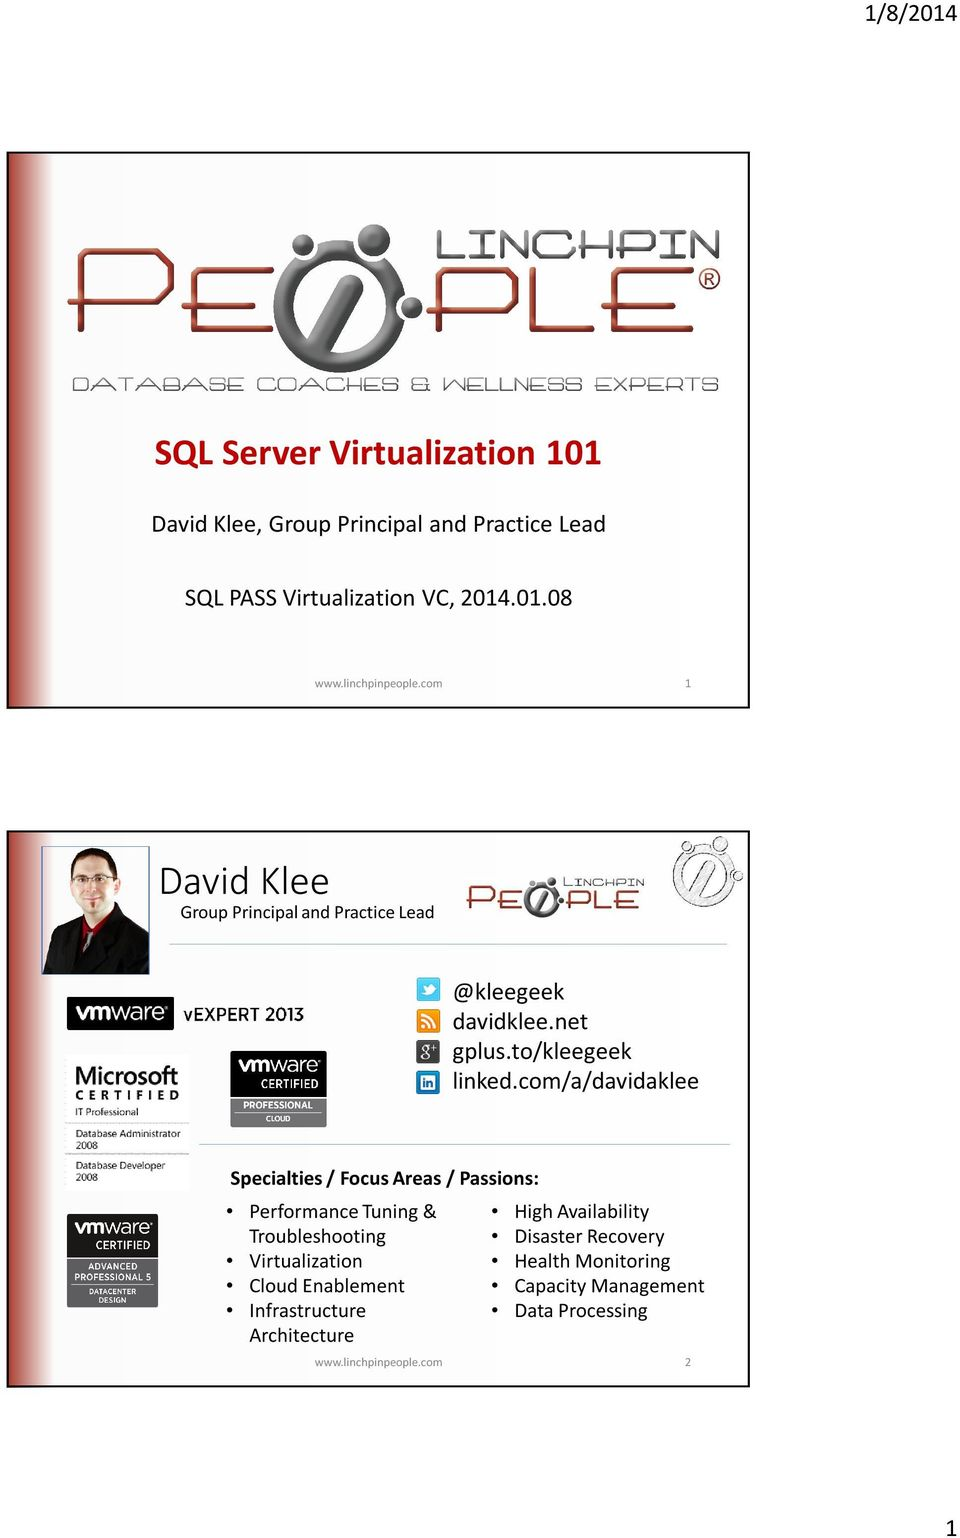 com/a/davidaklee Specialties / Focus Areas / Passions: Performance Tuning & Troubleshooting Virtualization Cloud Enablement